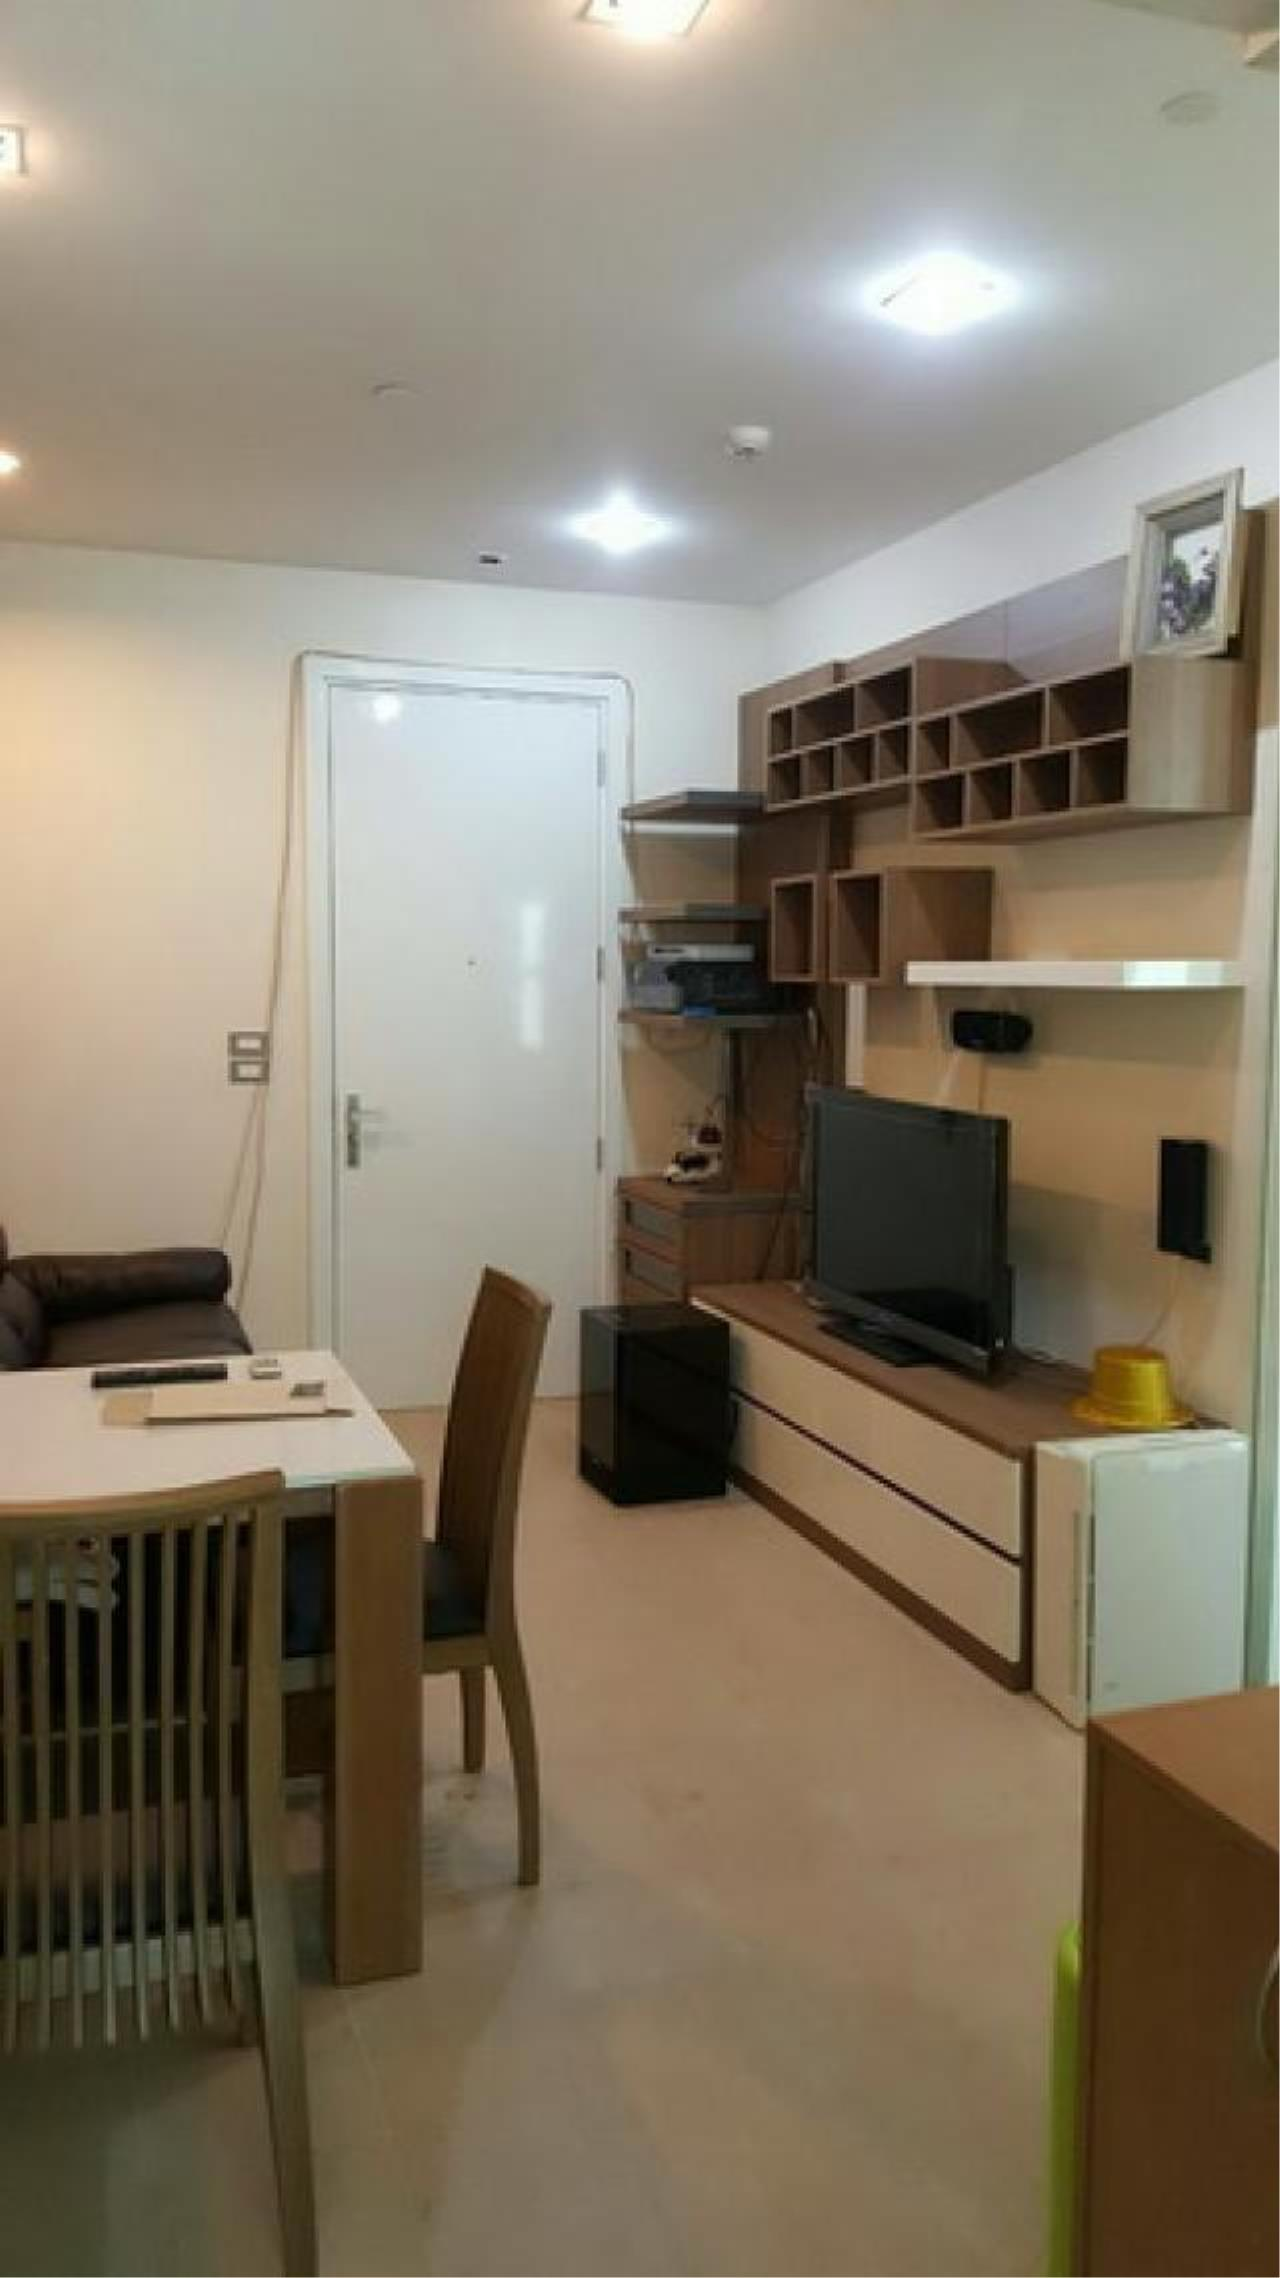 Quality Life Property Agency's RENT **** WITH TENANT ! THE ROOM SUKHUMVIT 62 | 1 BED 1 BATH | 45 SQ. M. 20 FOOR 3